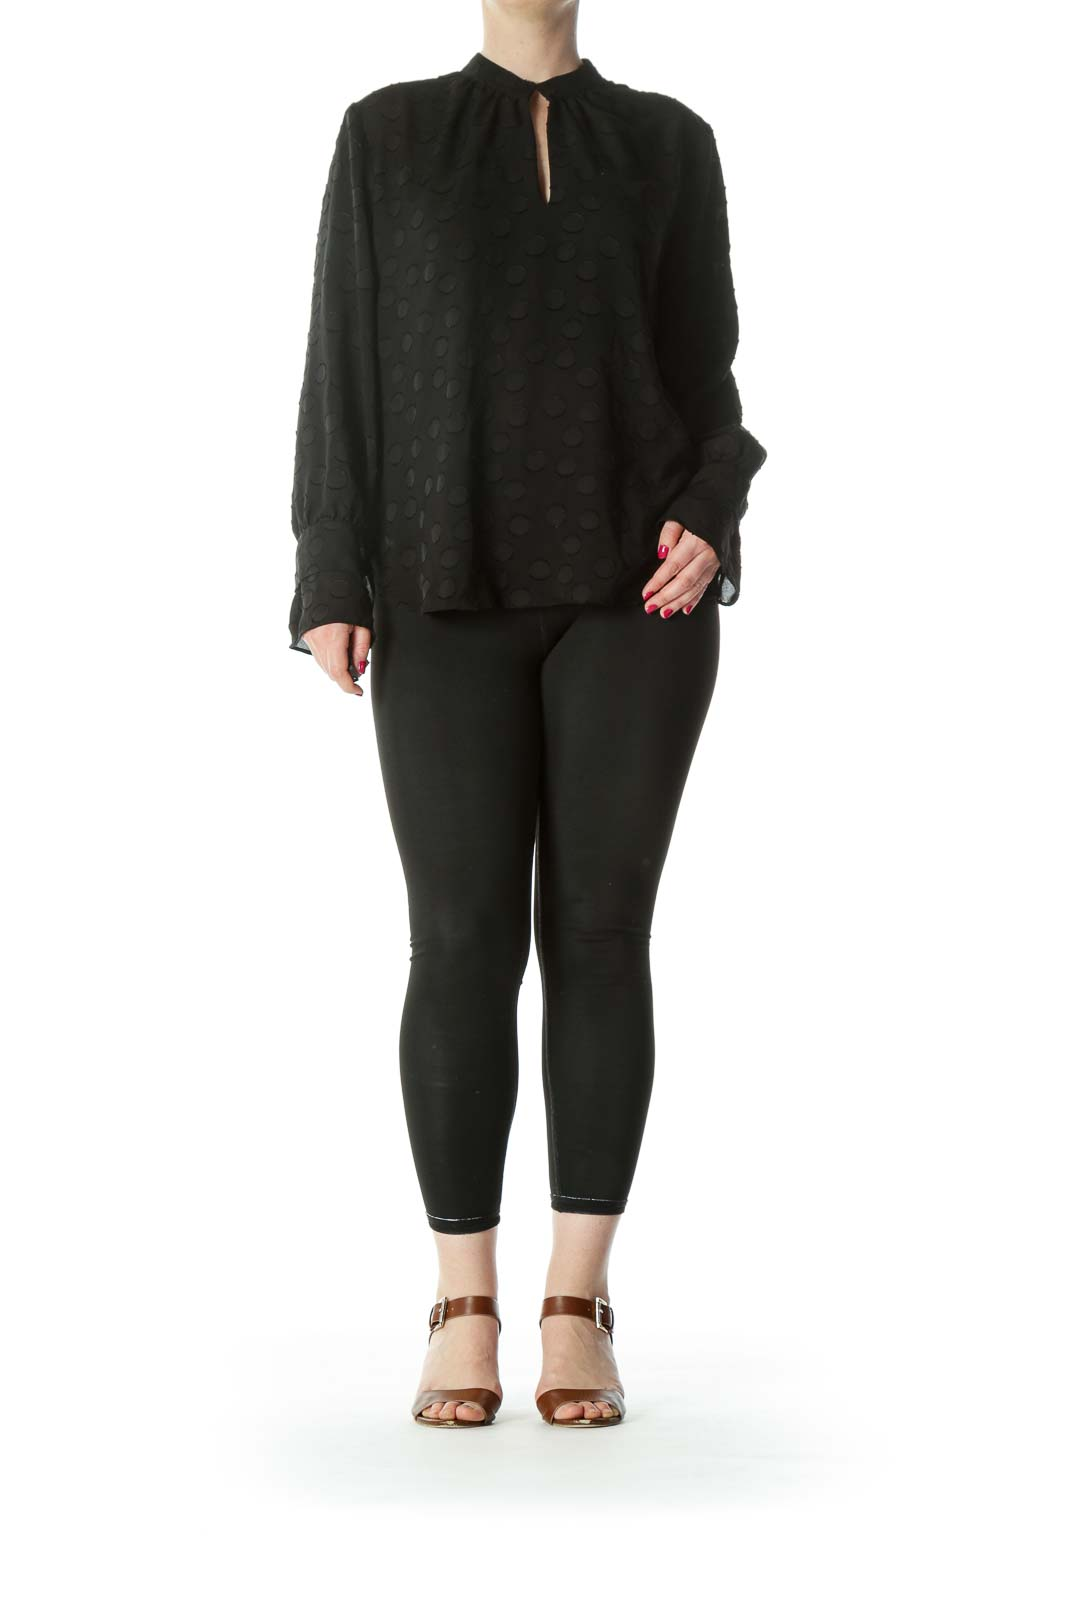 Black Keyhole Circles-Textured-Appliques High-Neck Long-Sleeve Blouse